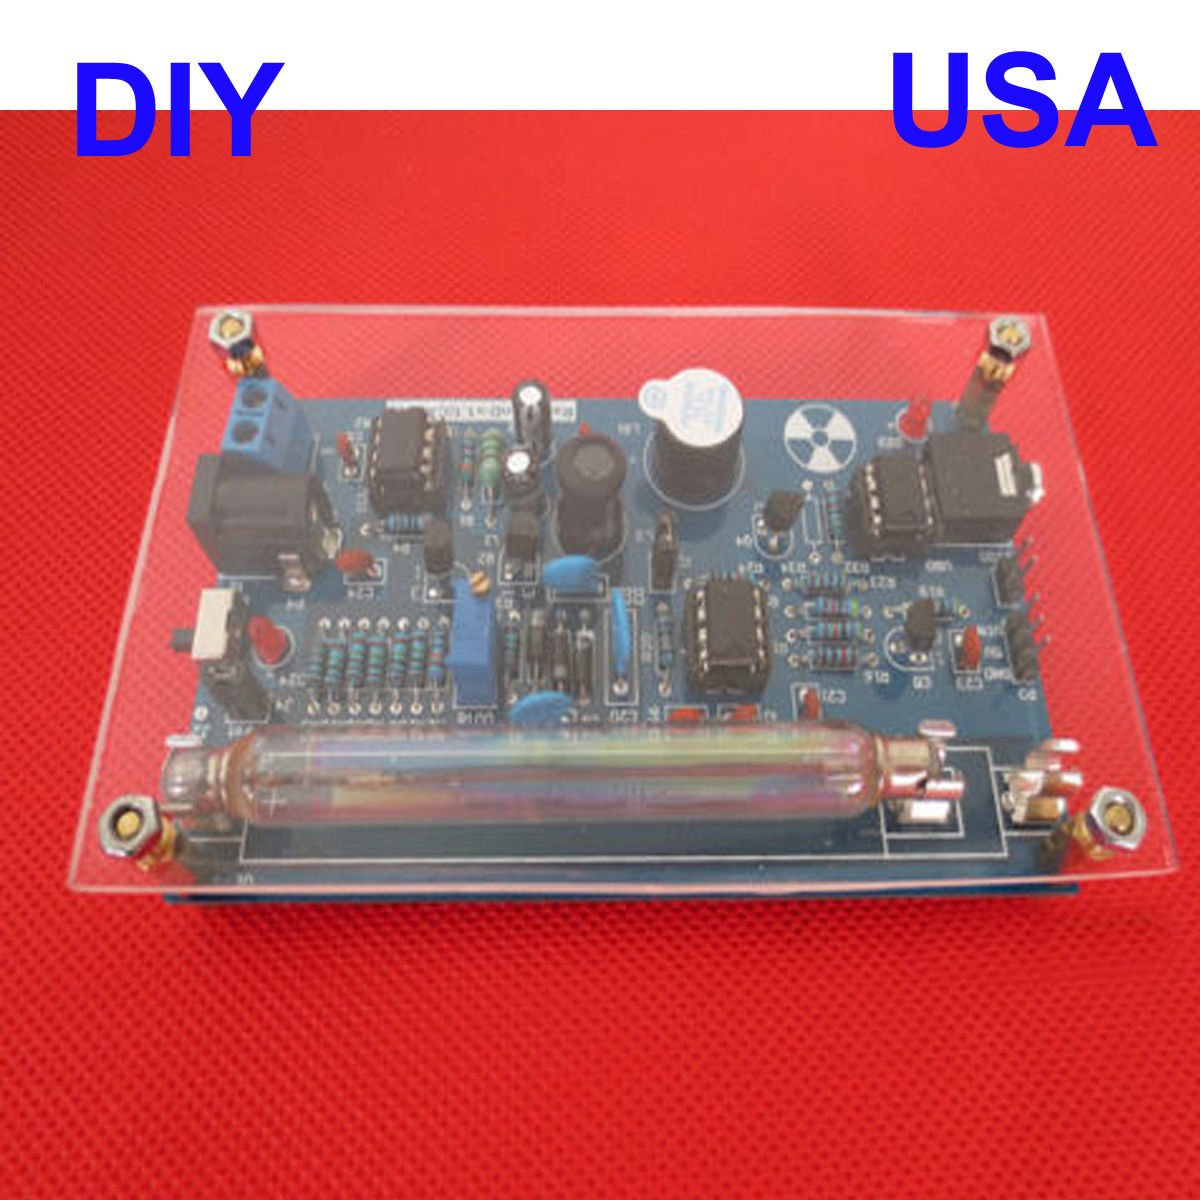 JIAN YA NA US Assembled DIY Geiger Counter Kit Nuclear Radiation Detector Arduino Tube: Amazon.com: Industrial & Scientific